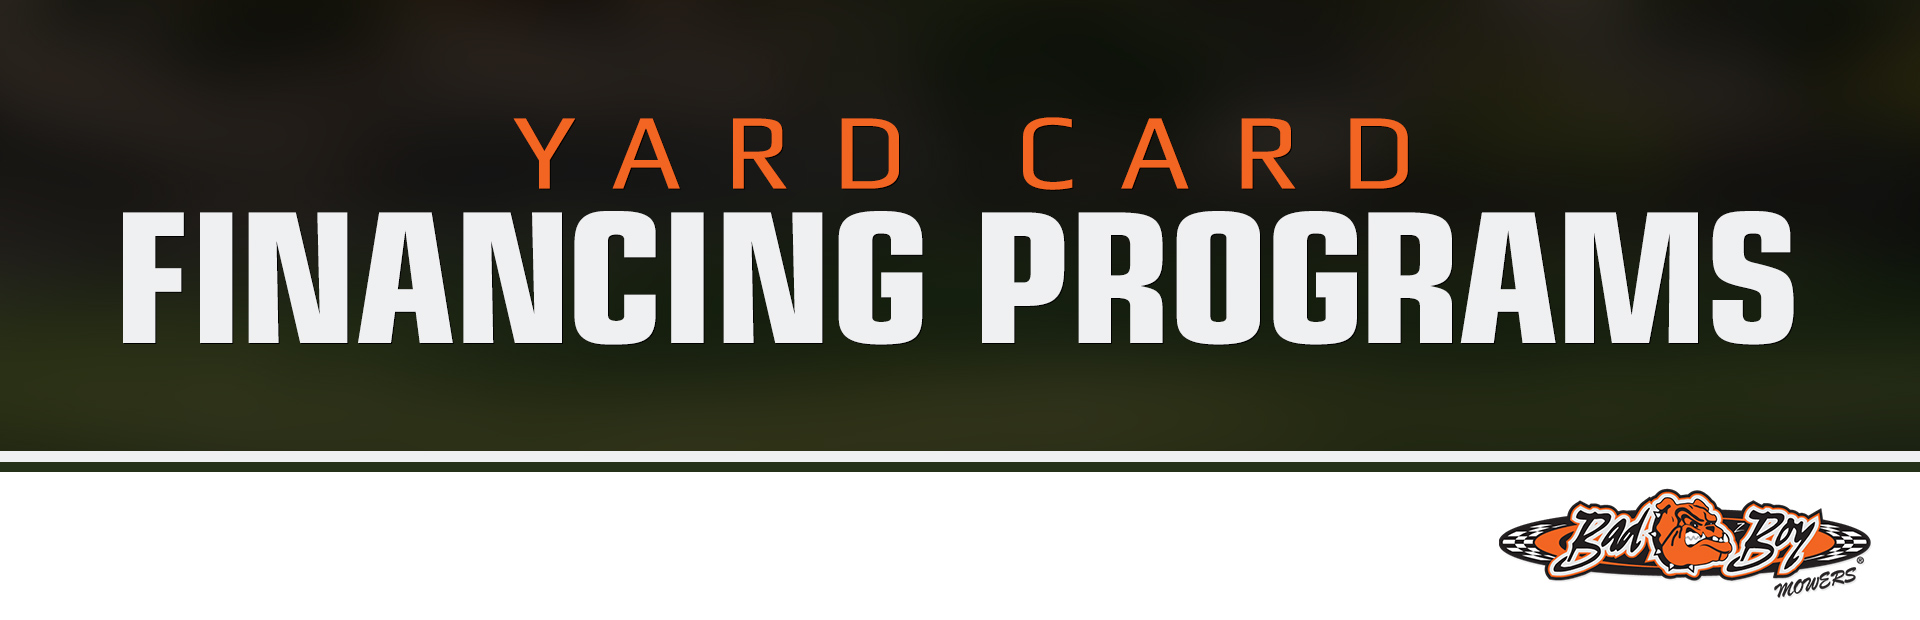 Bad Boy Mowers – Yard Card Financing Programs